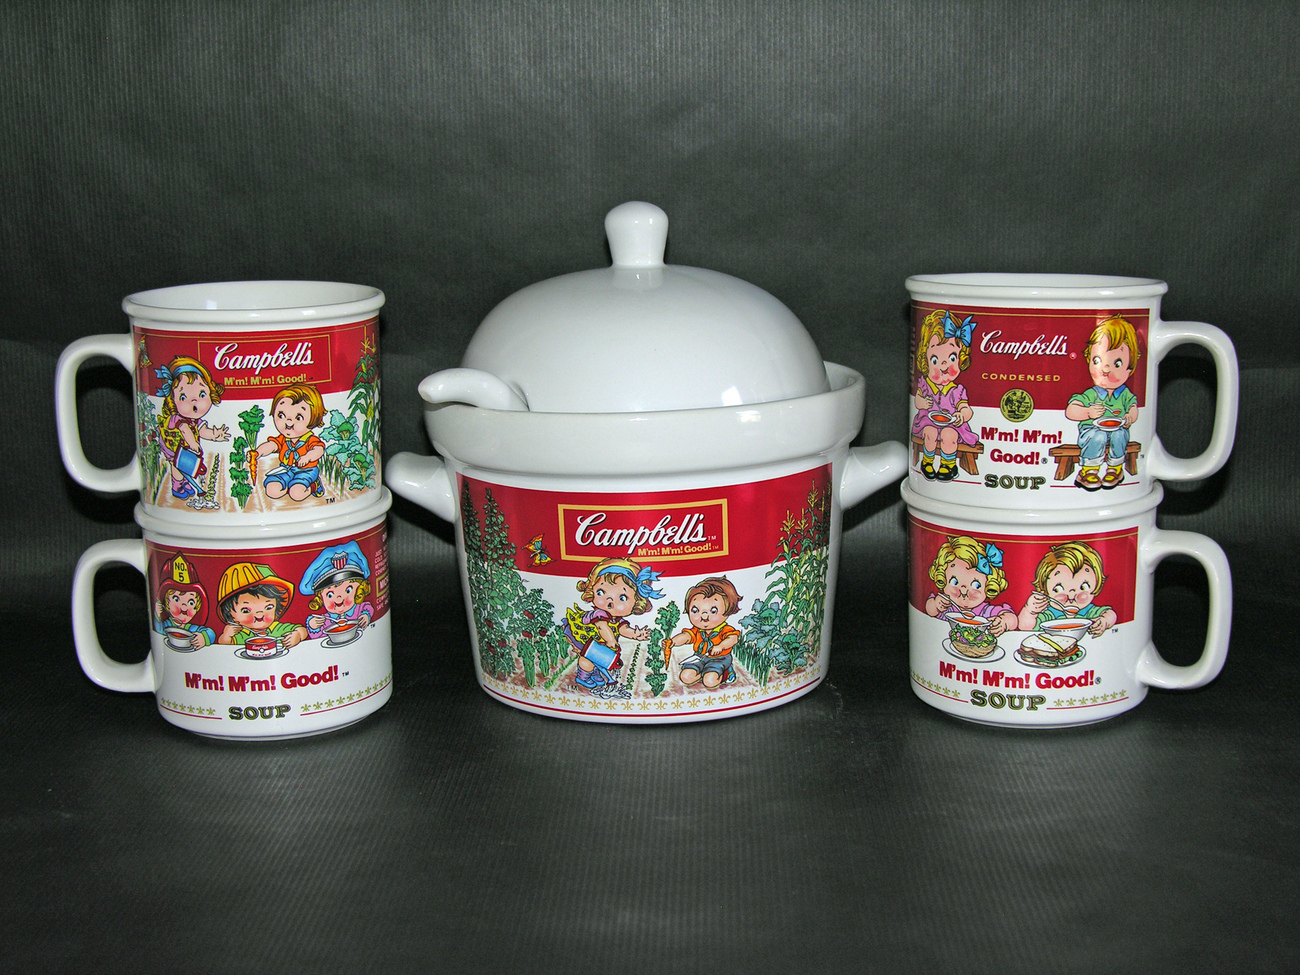 Campbells tureen set 1